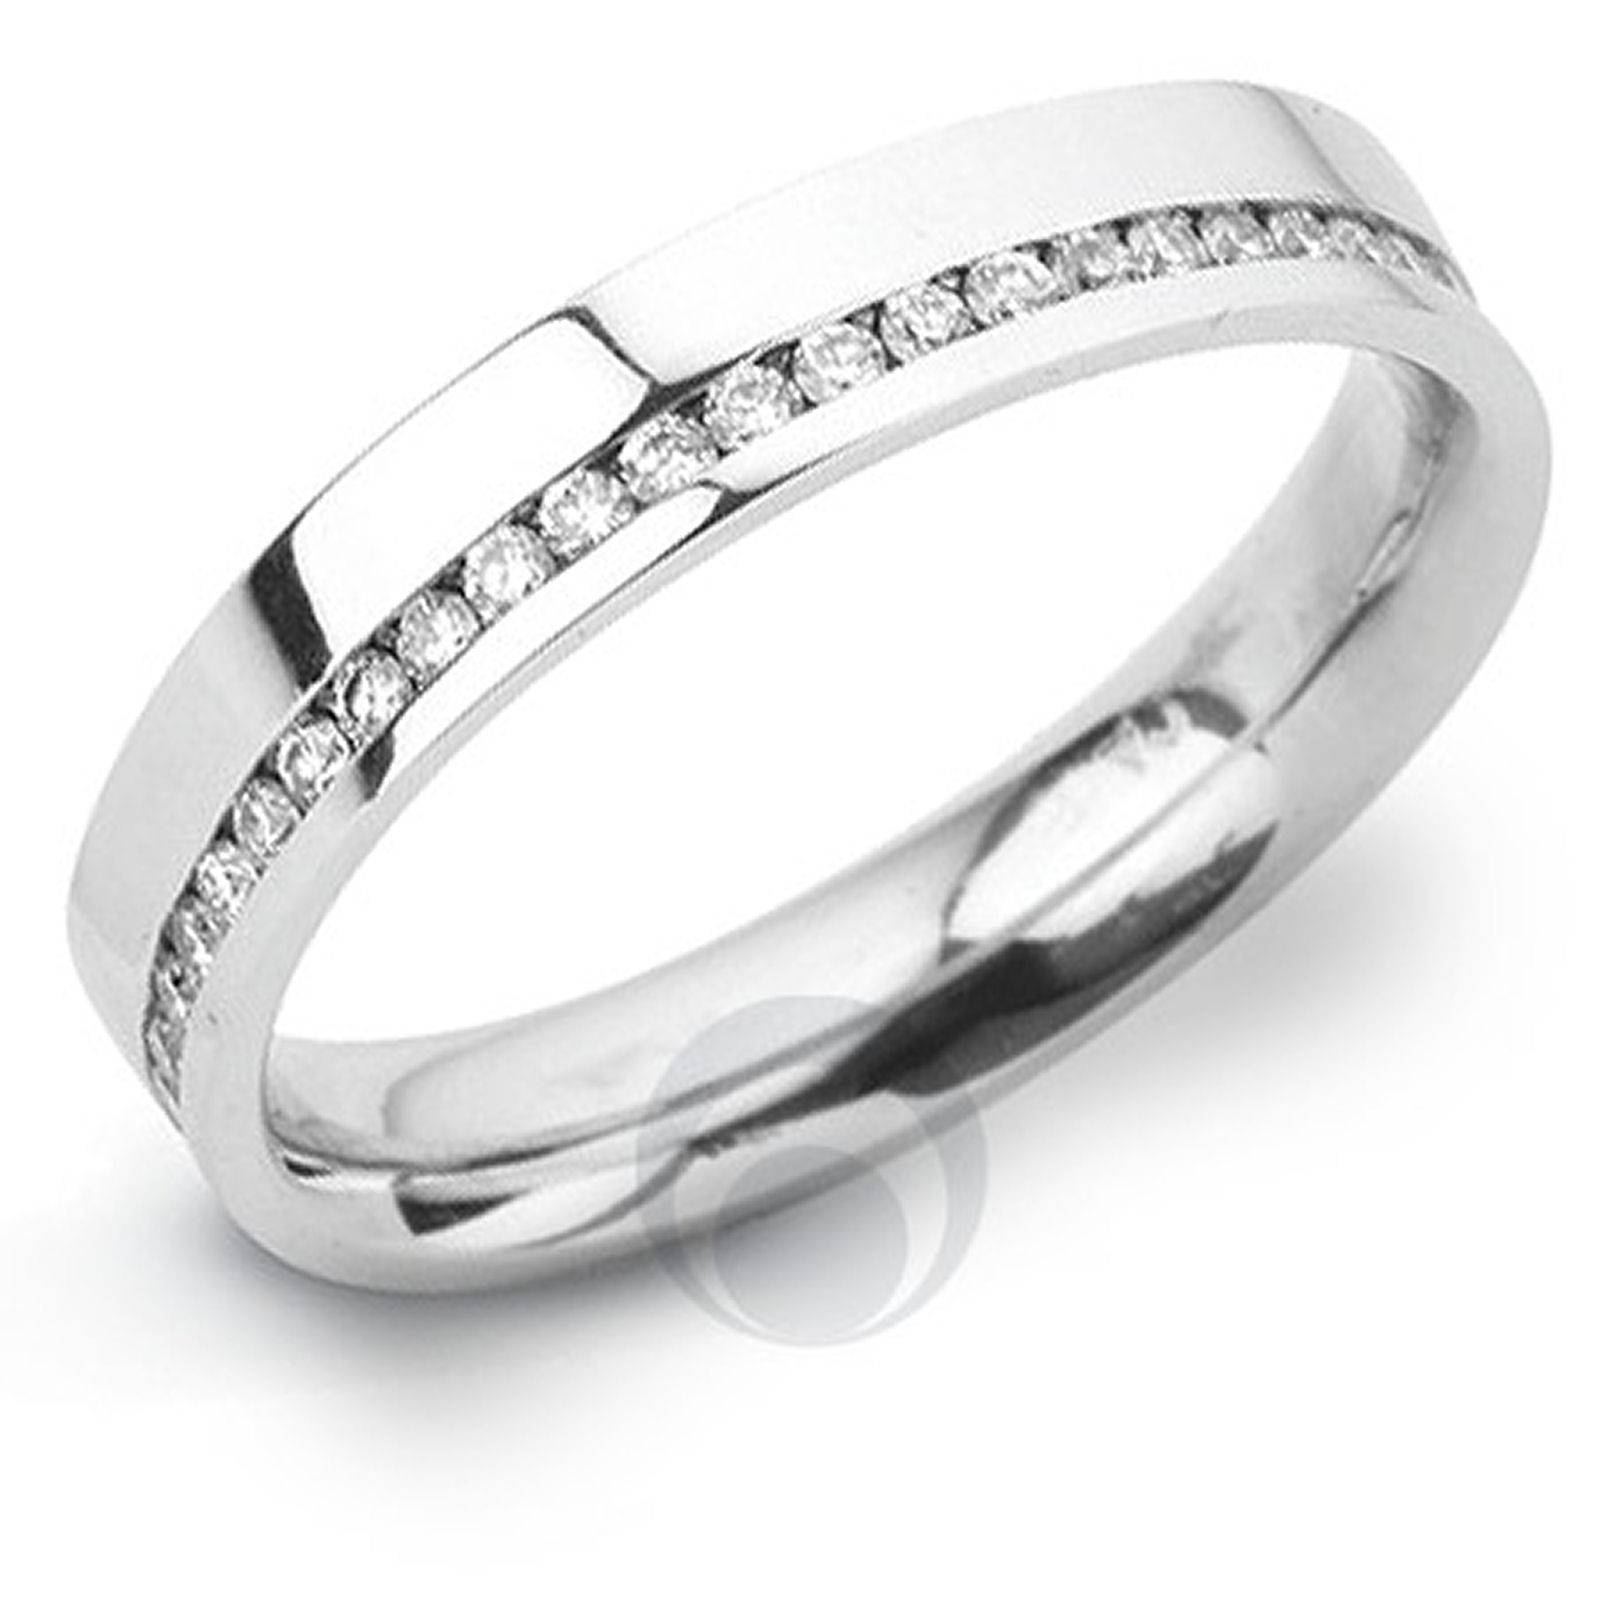 Channel Diamond Platinum Wedding Ring Wedding Dress From The Throughout Most Current Platinum Diamond Wedding Bands (View 5 of 15)